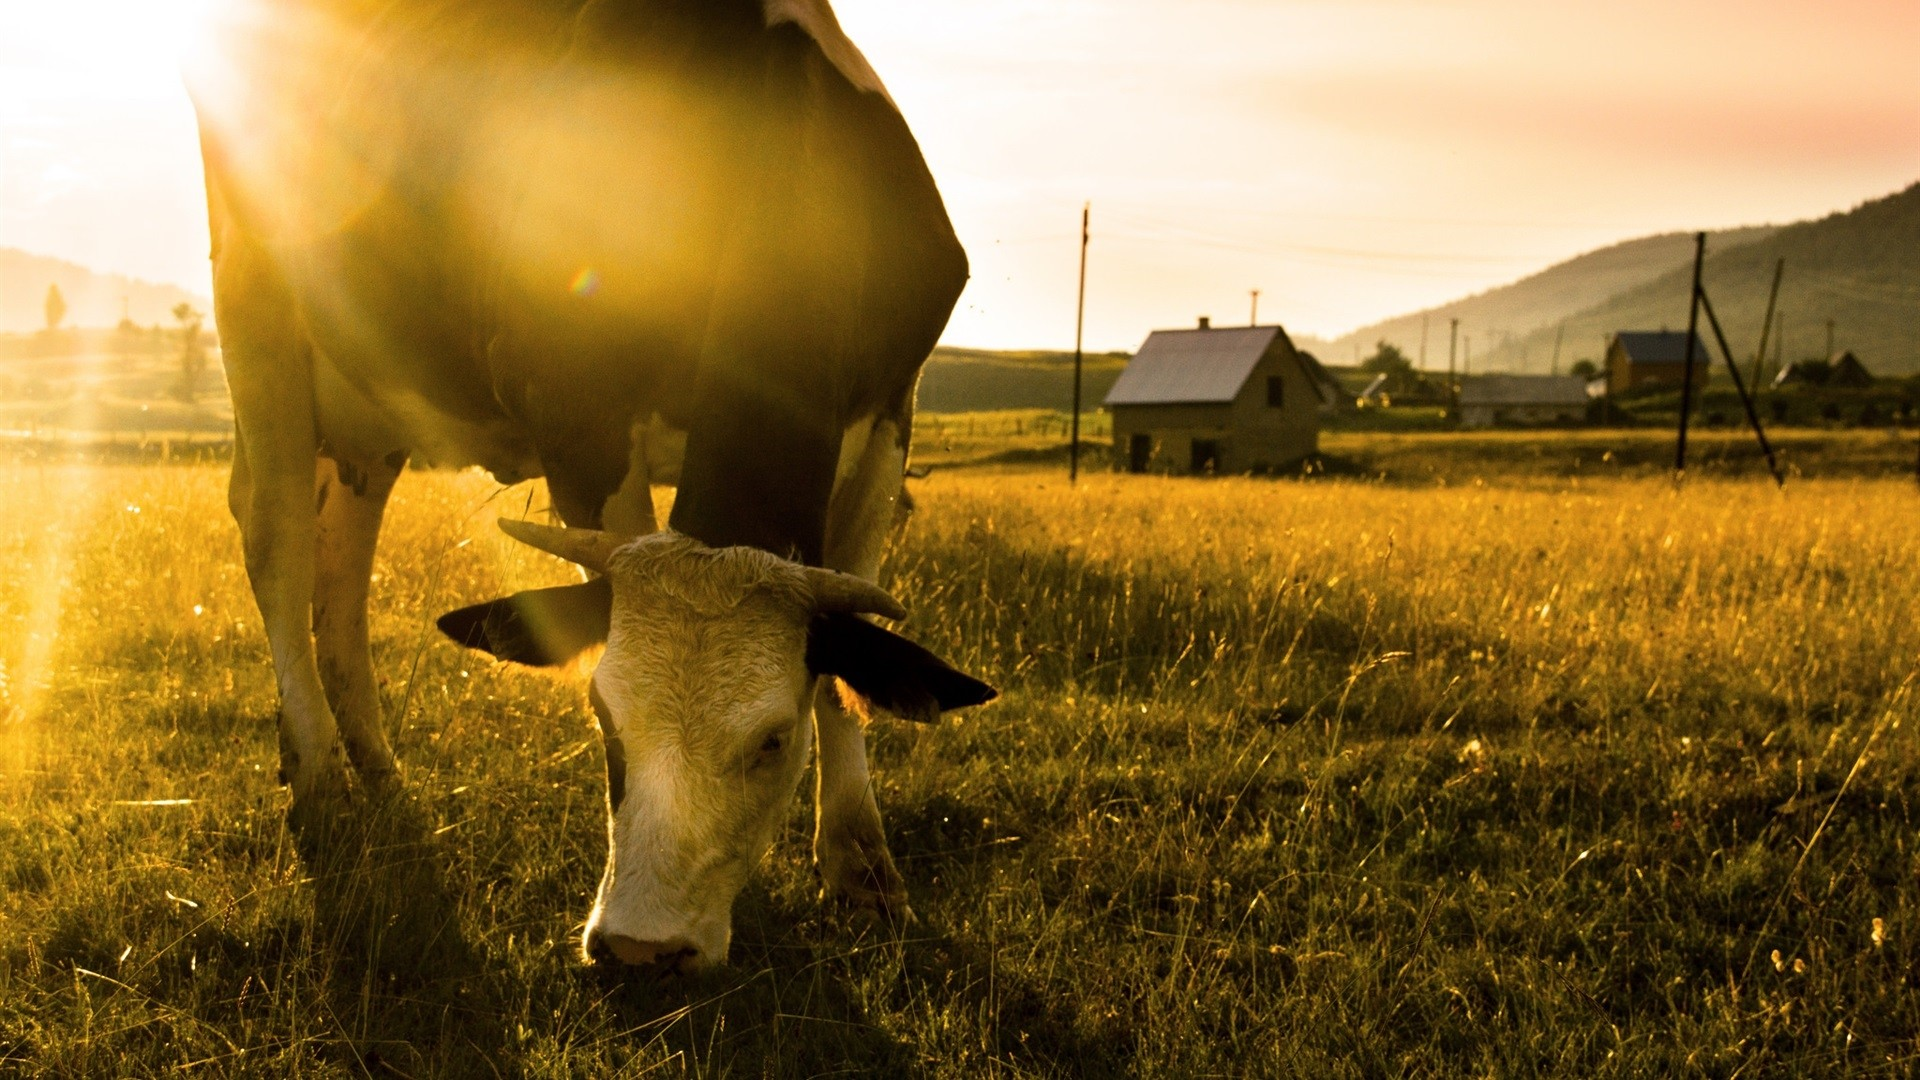 Cow Free Wallpaper and Background